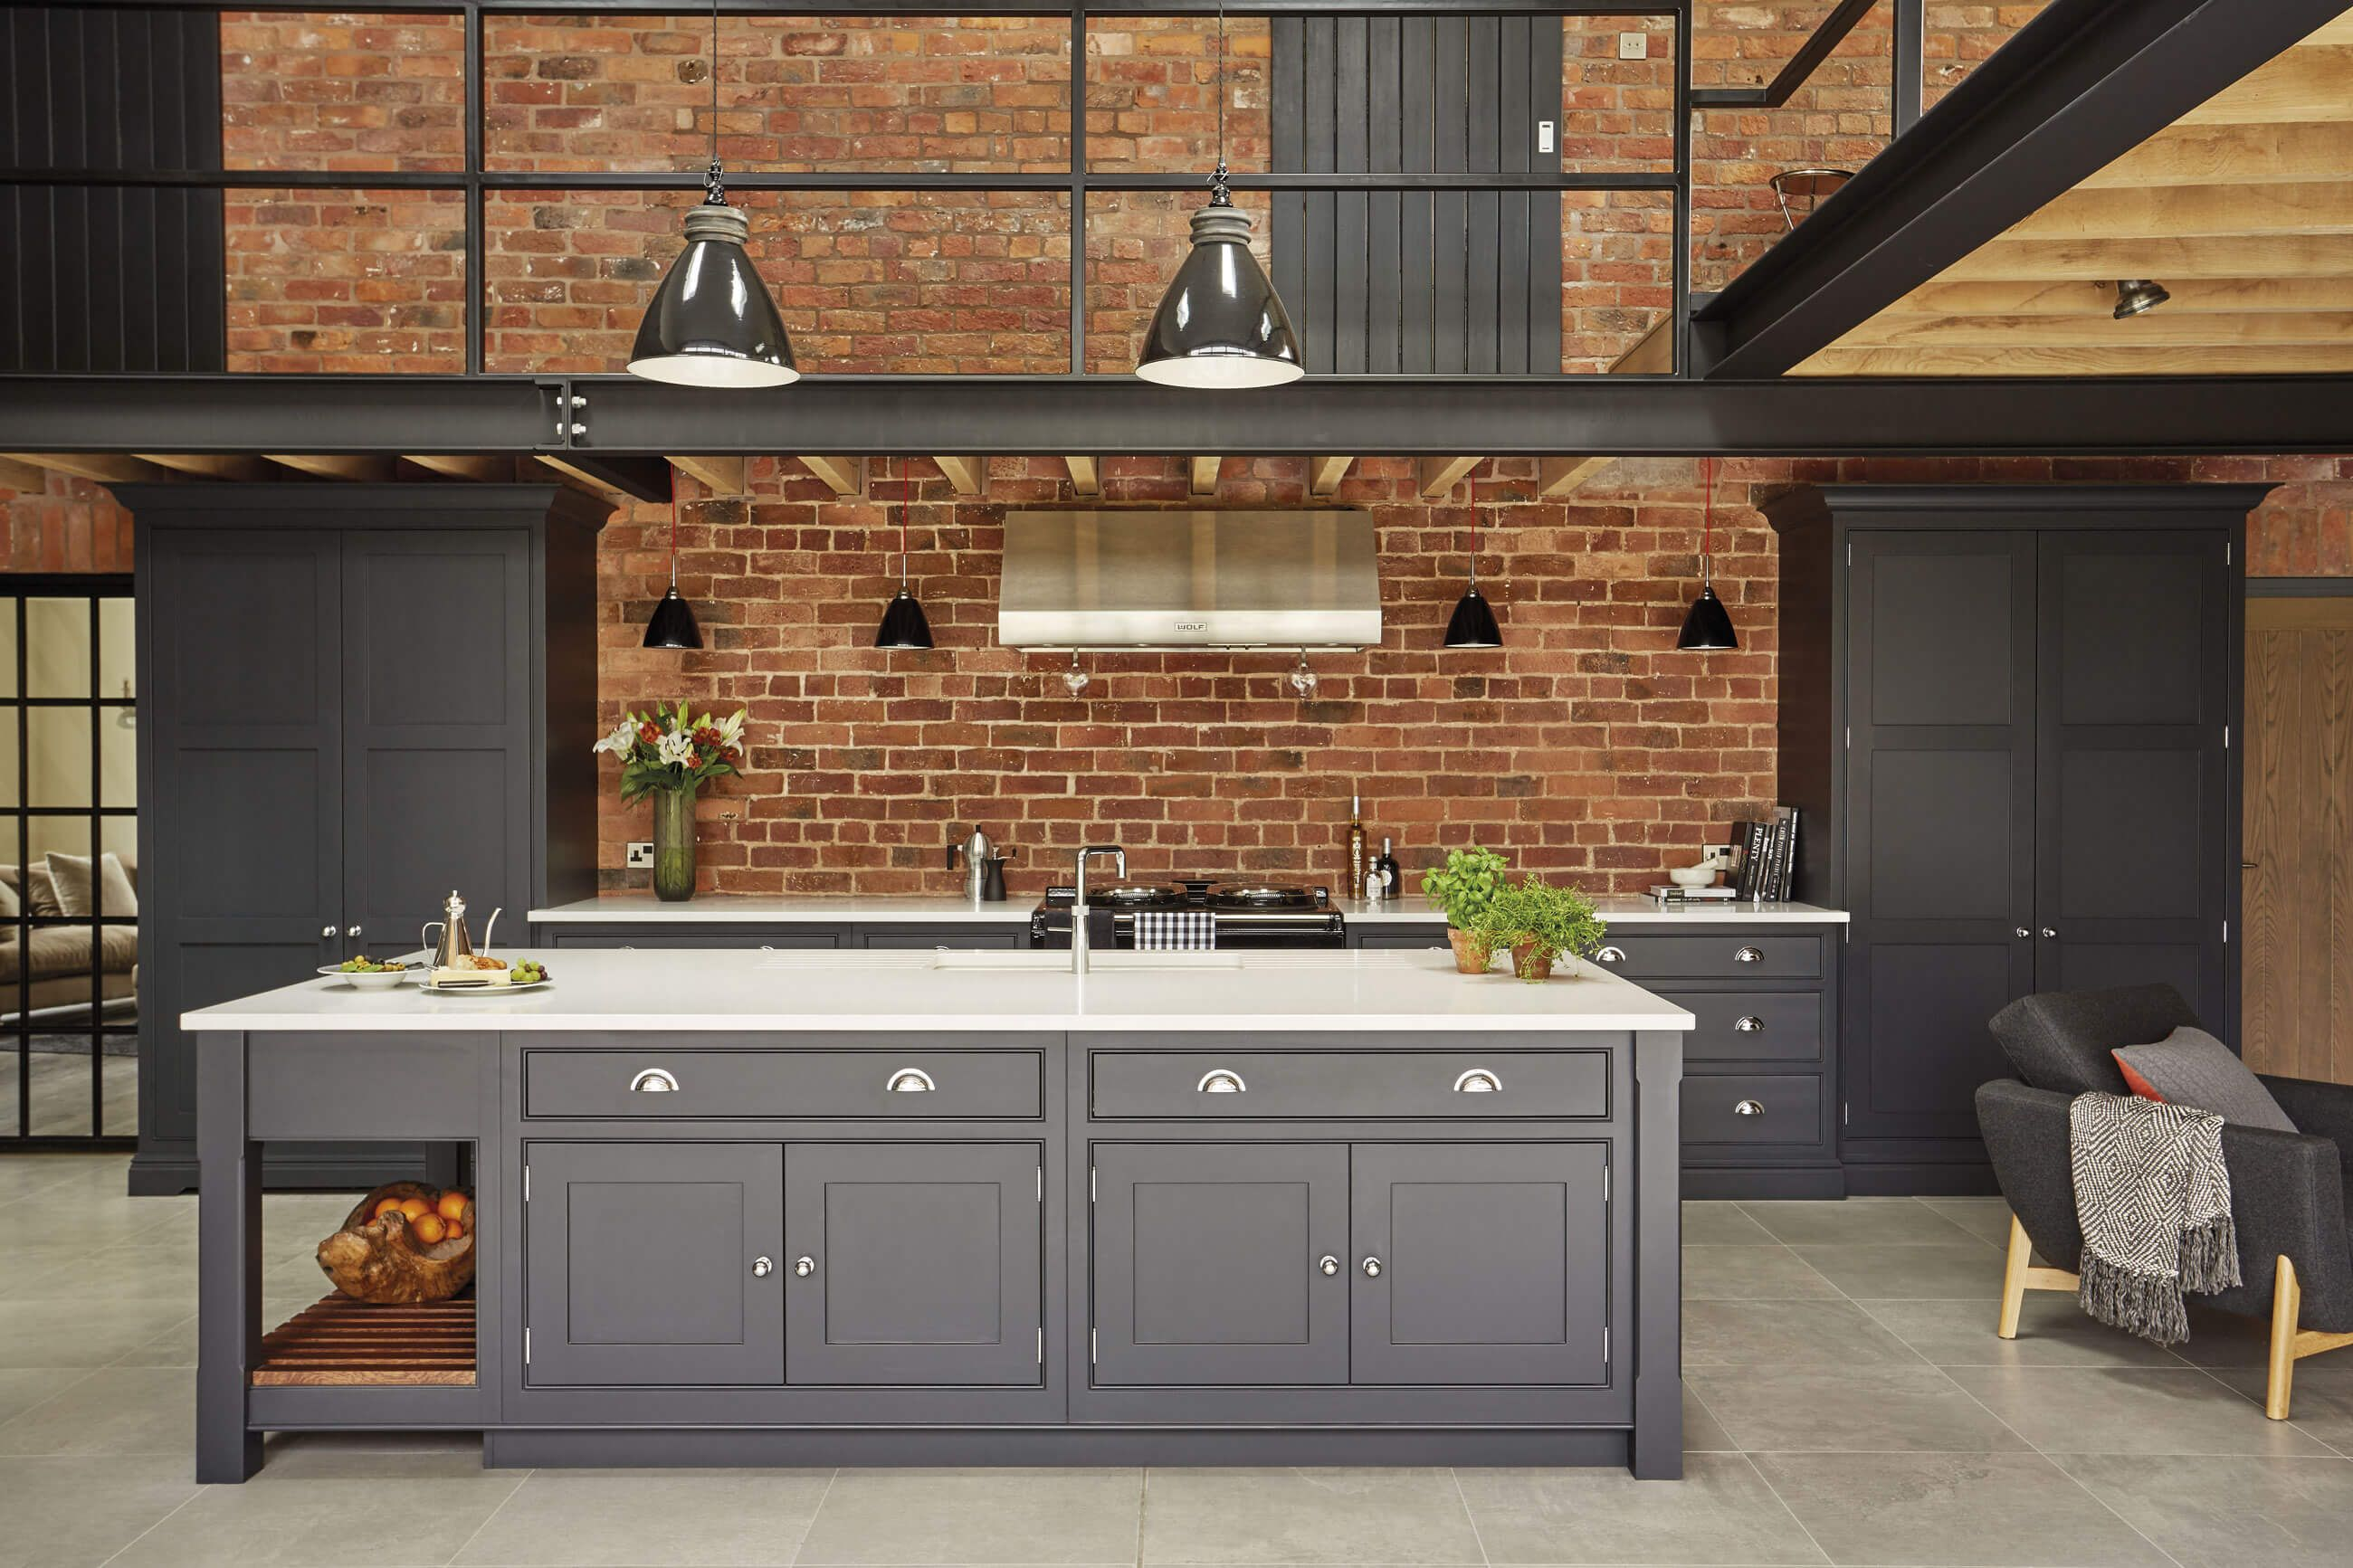 Industrial Style Kitchen | Pinterest | Industrial style, Shaker ...